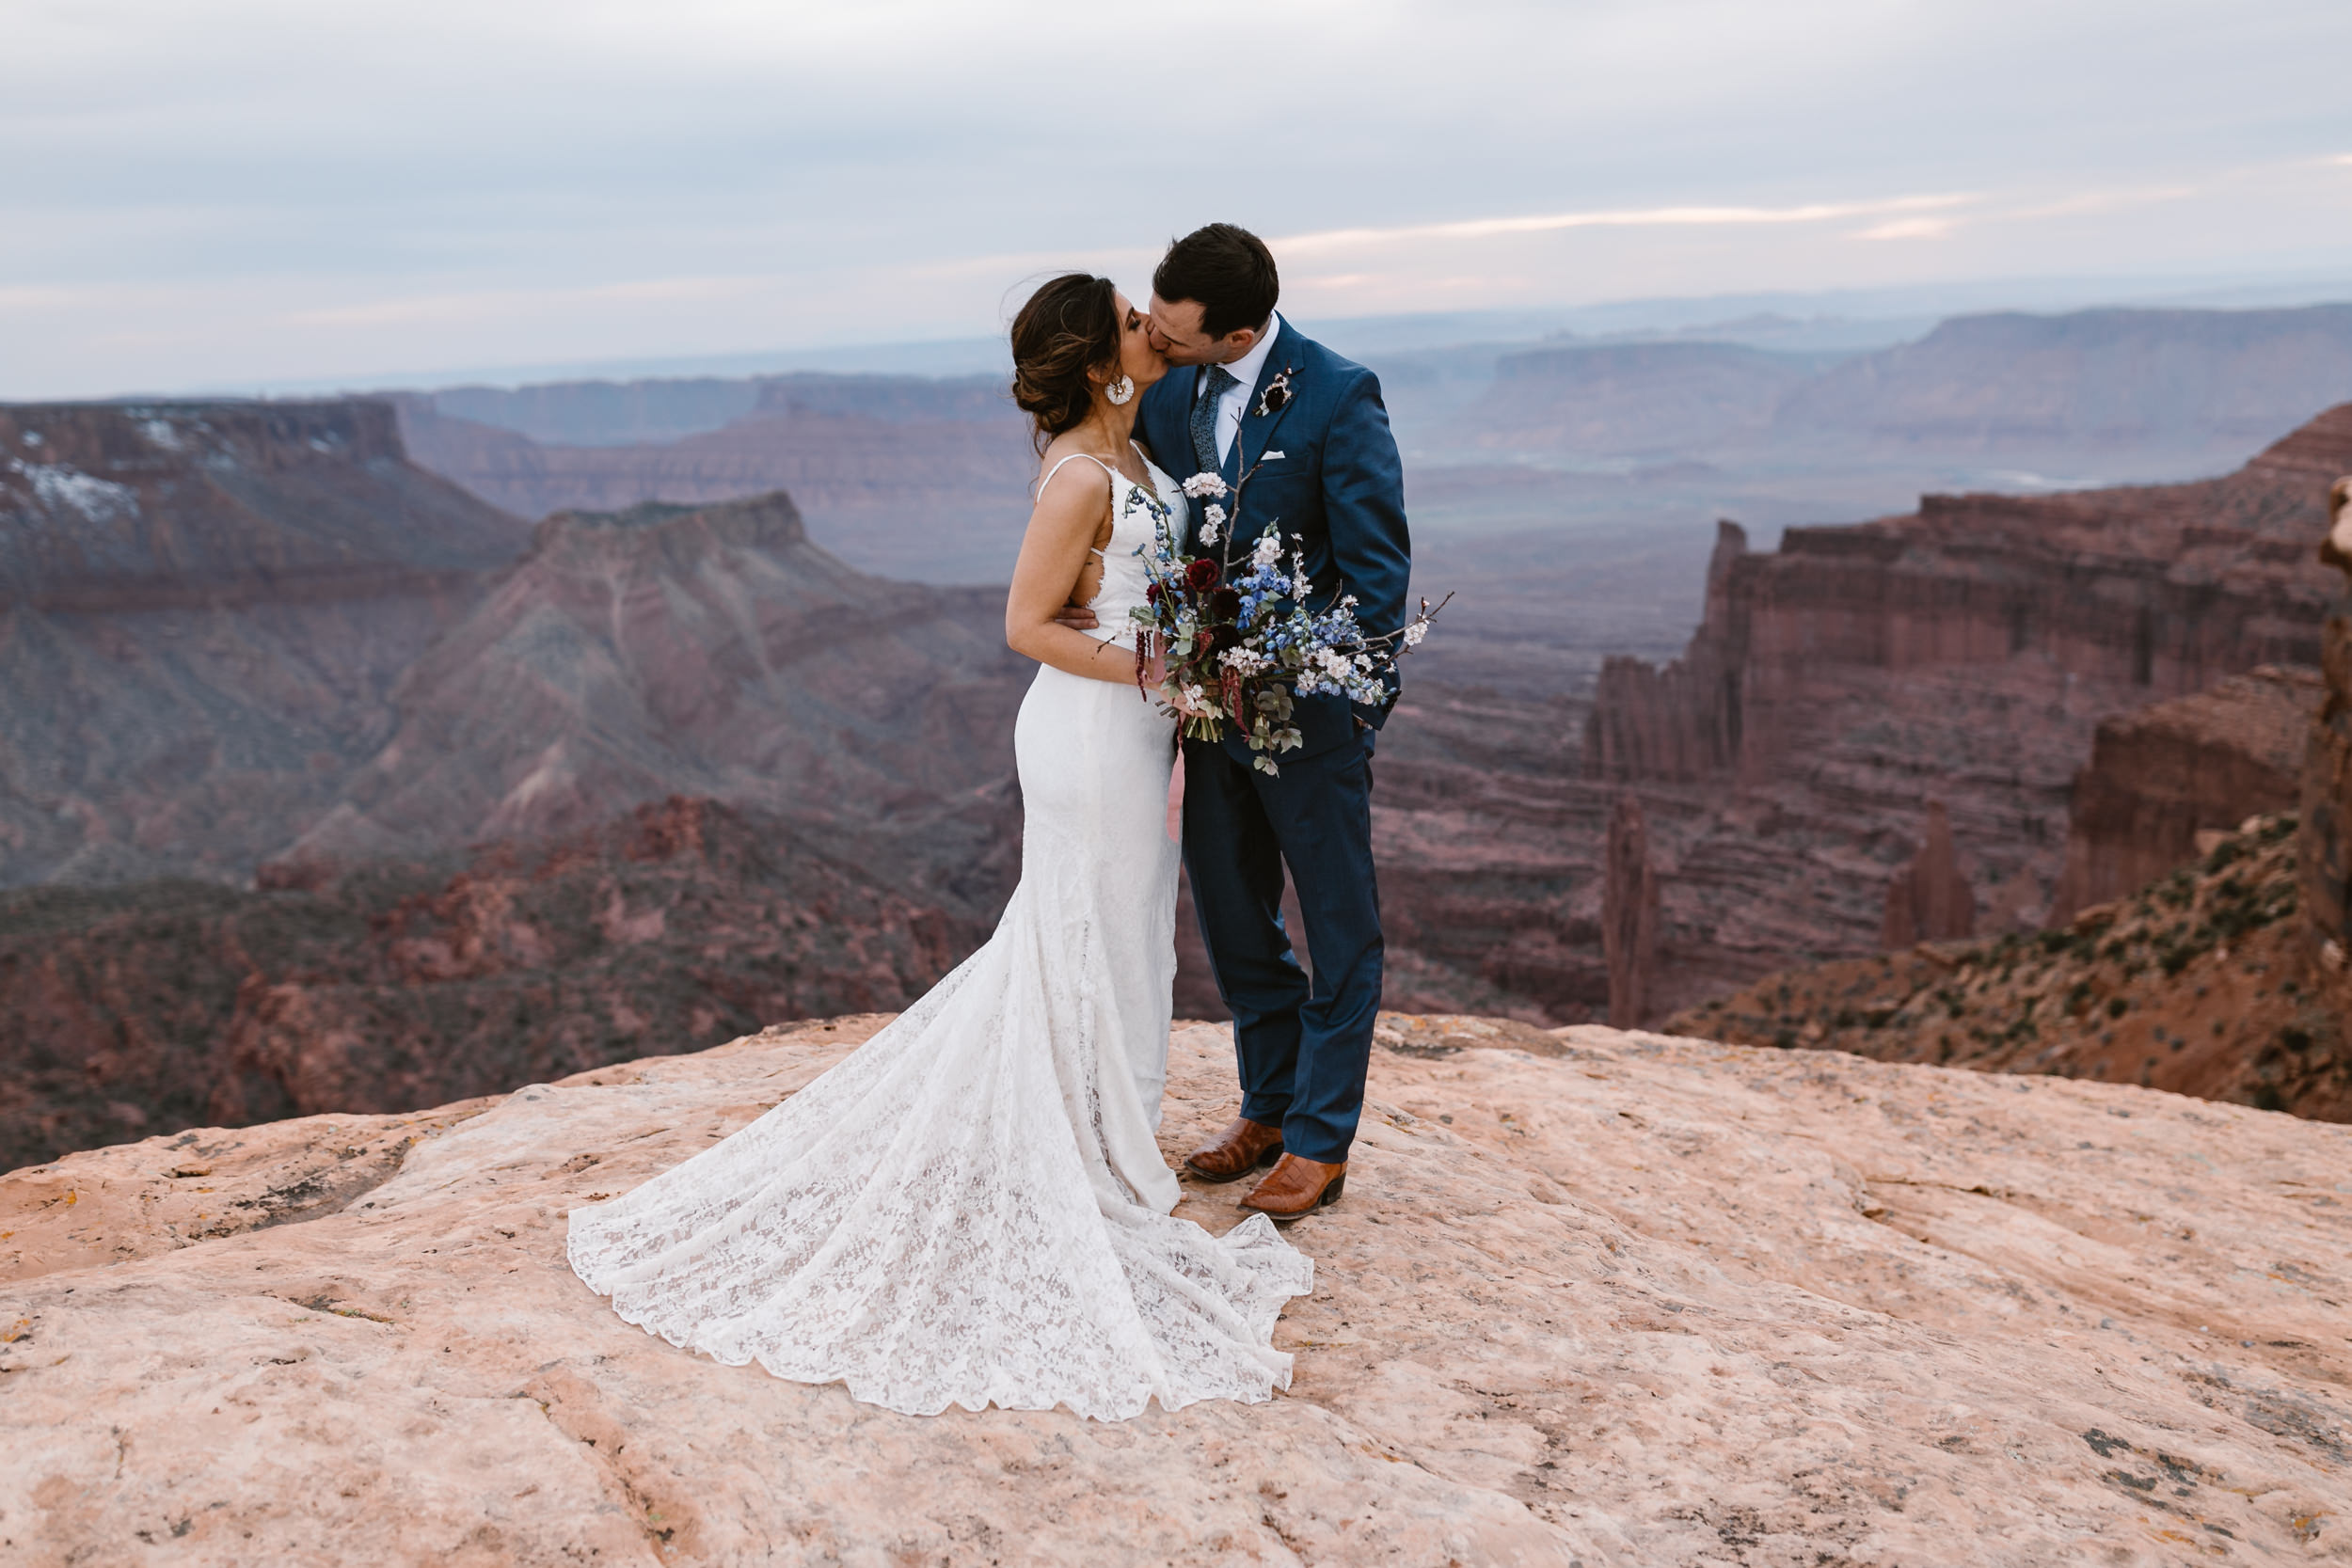 Hearnes-Elopement-Photography-Moab-Jeep-Wedding-38.jpg